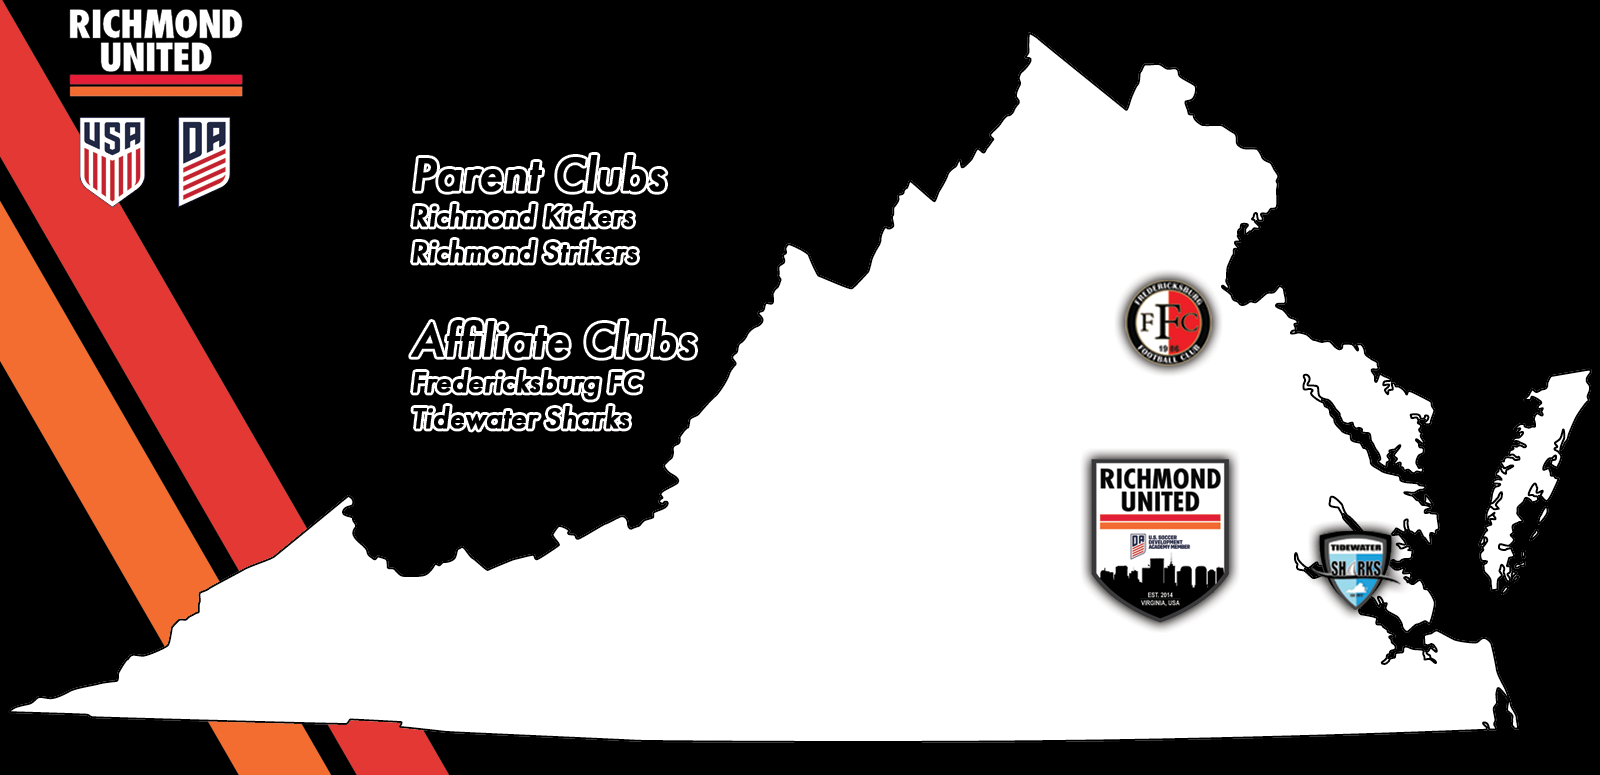 Richmond United adds Affiliate Clubs